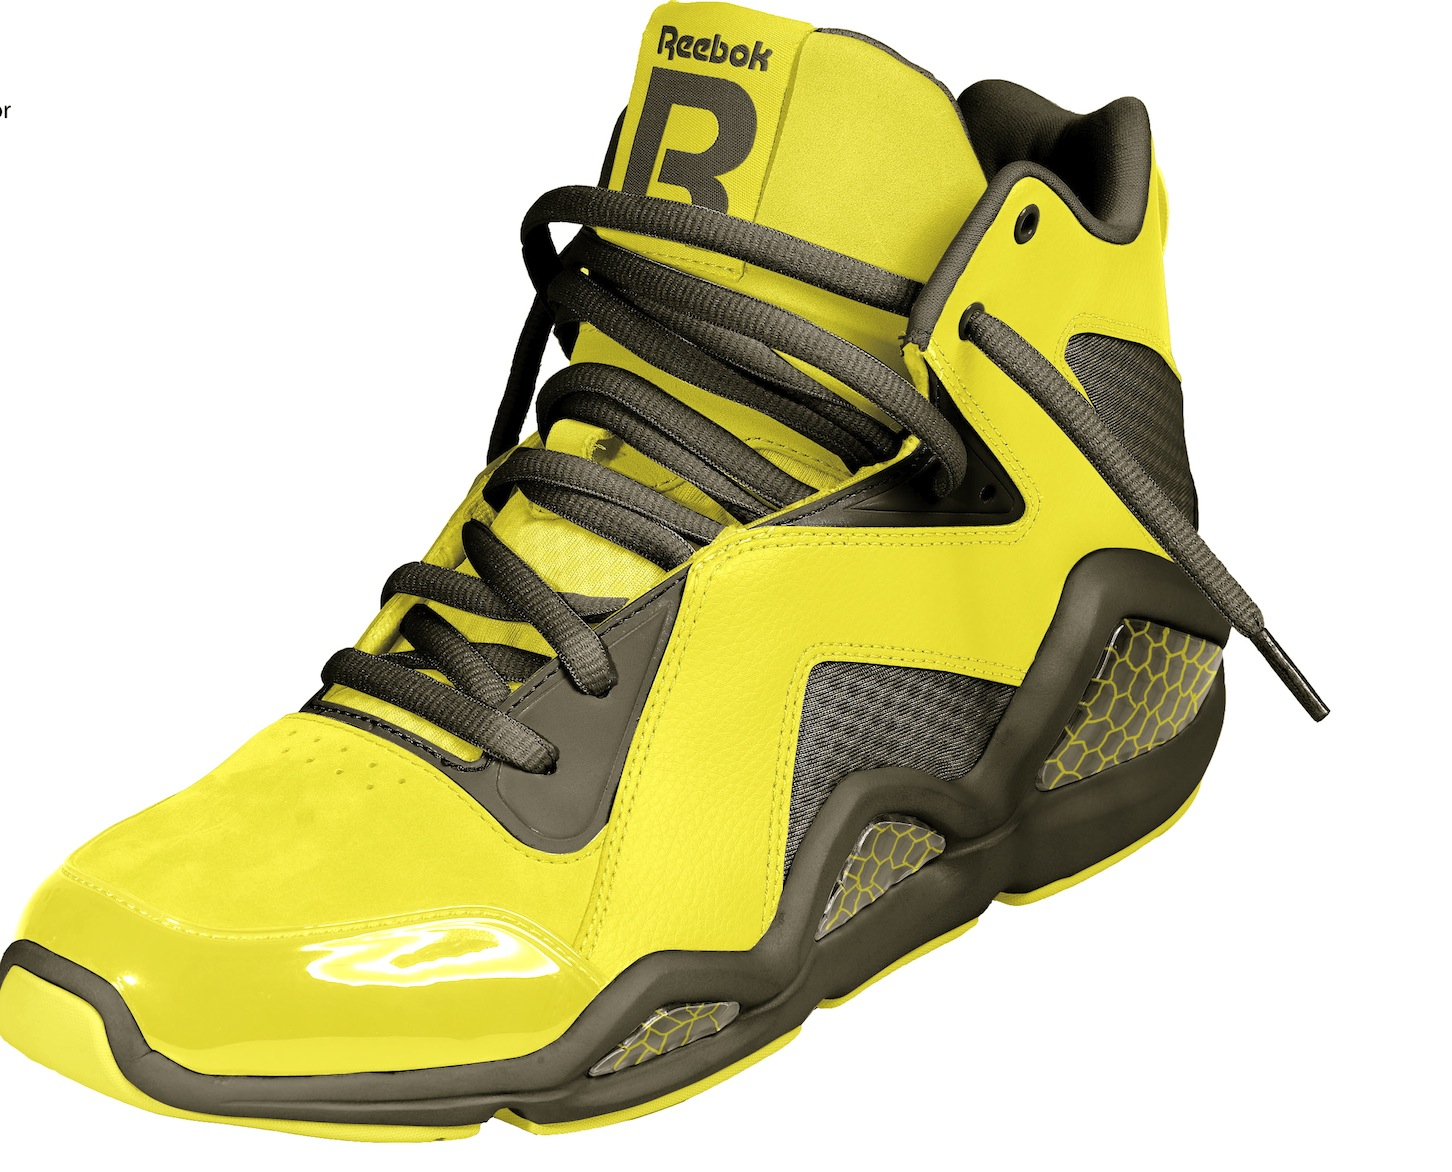 cd2de34a993 Swizz Beatz x Reebok